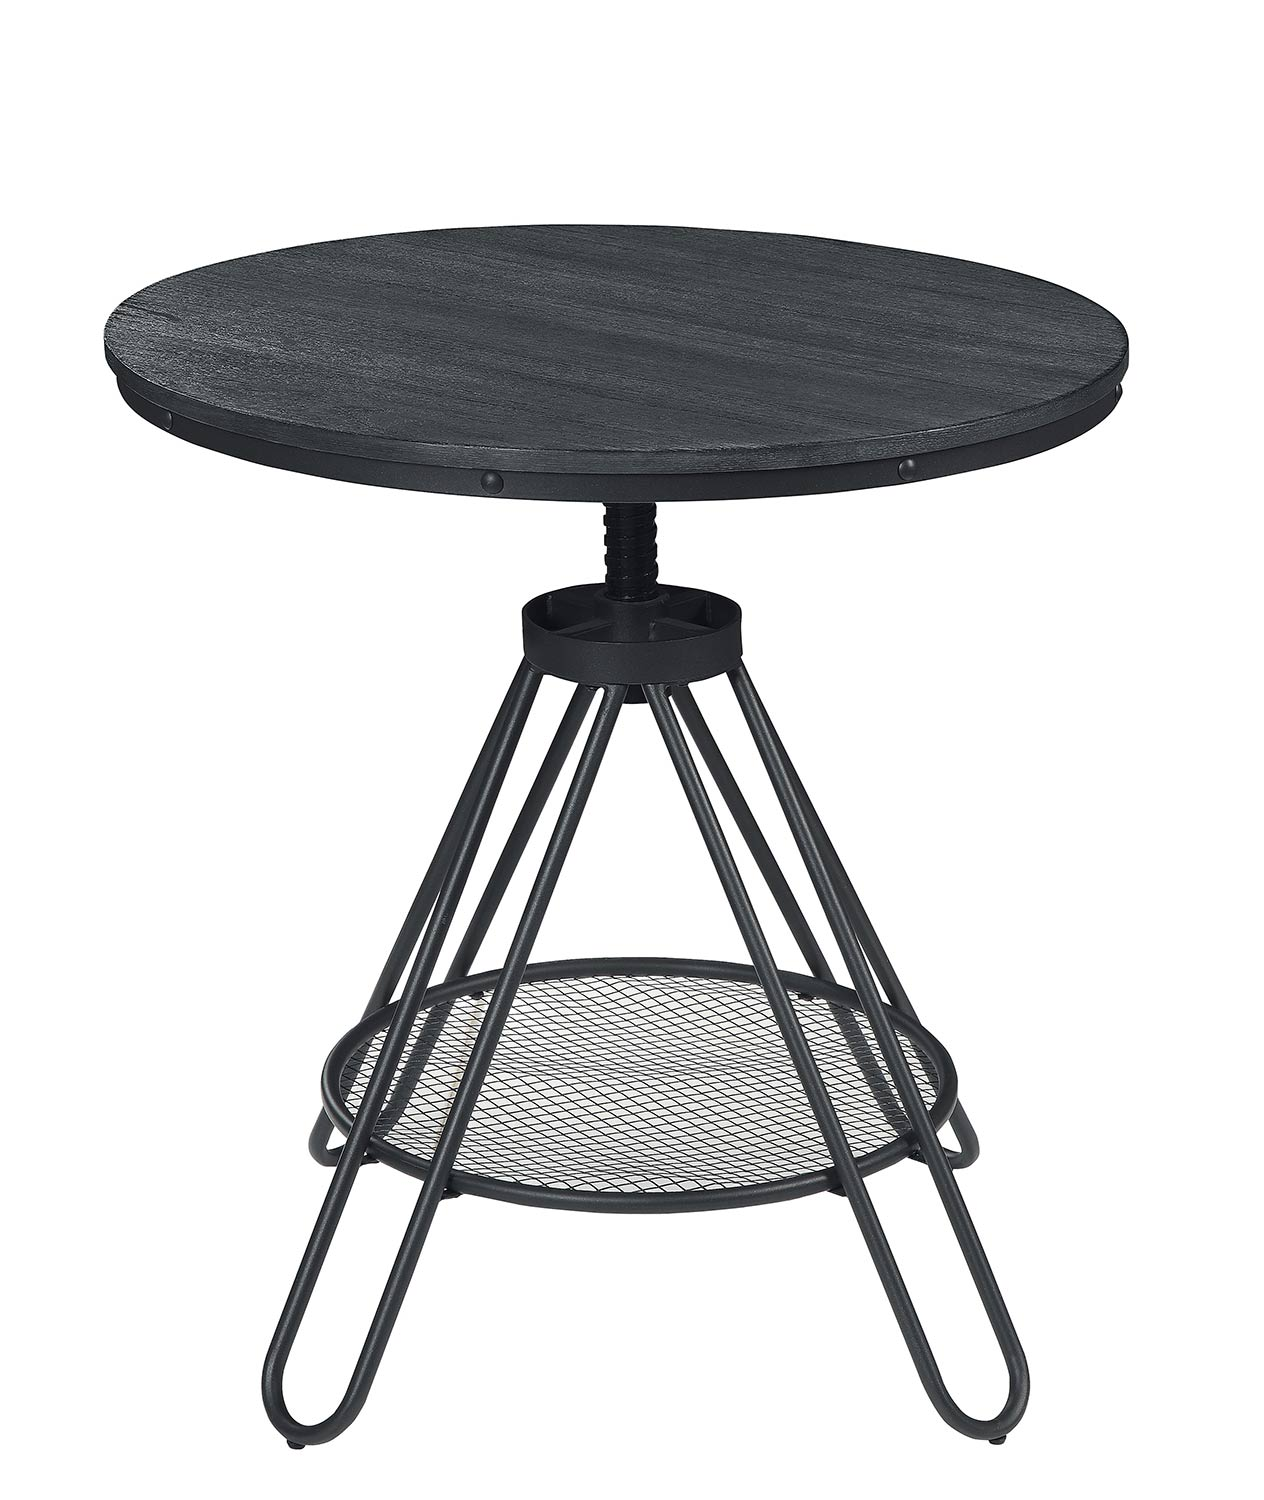 Homelegance Cirrus Adjustable Round Dining Table   Weathered Gray